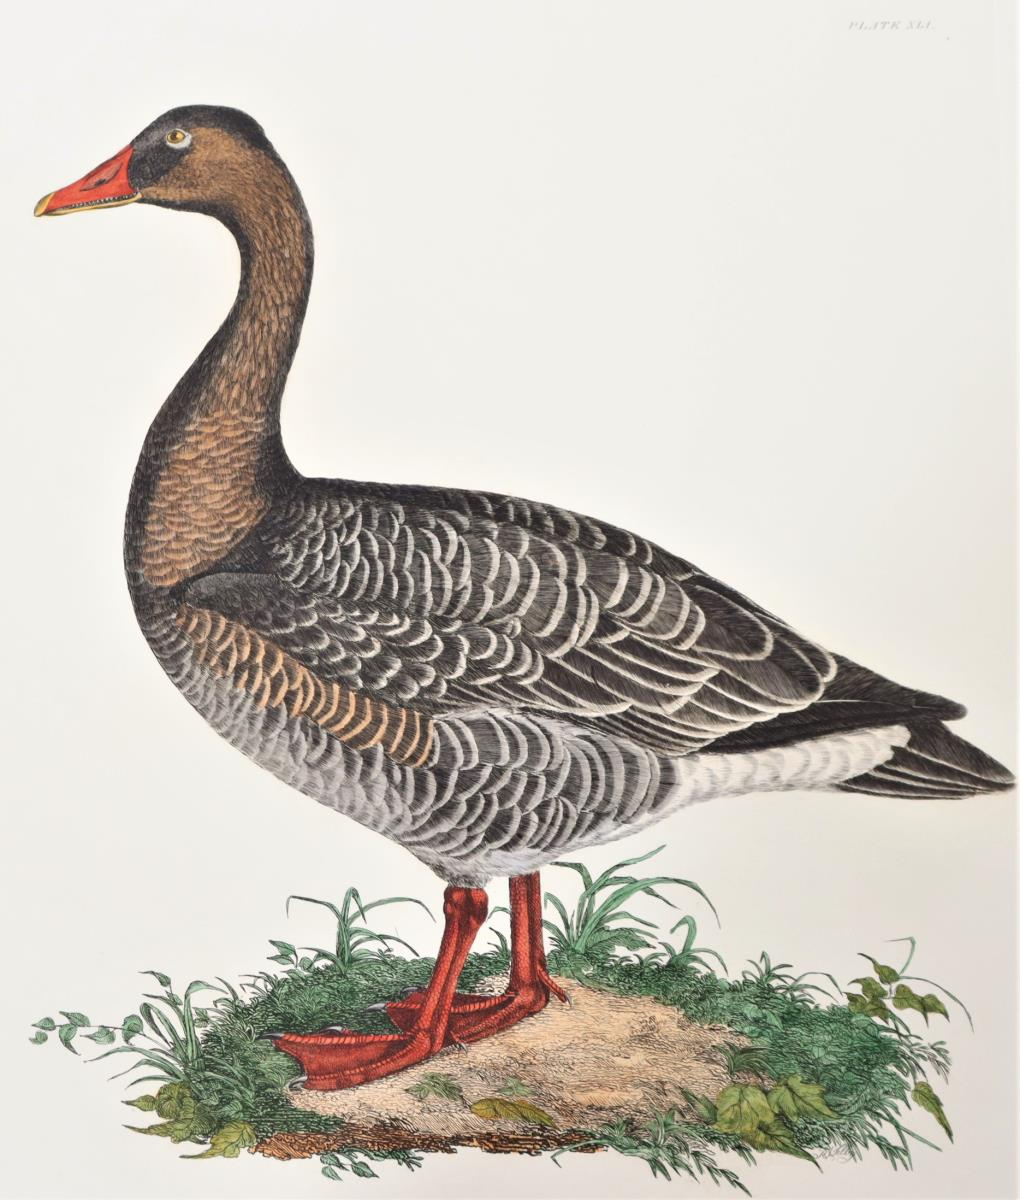 P J Selby, Hand-Colored Engraving, Wild Goose - Image 4 of 4